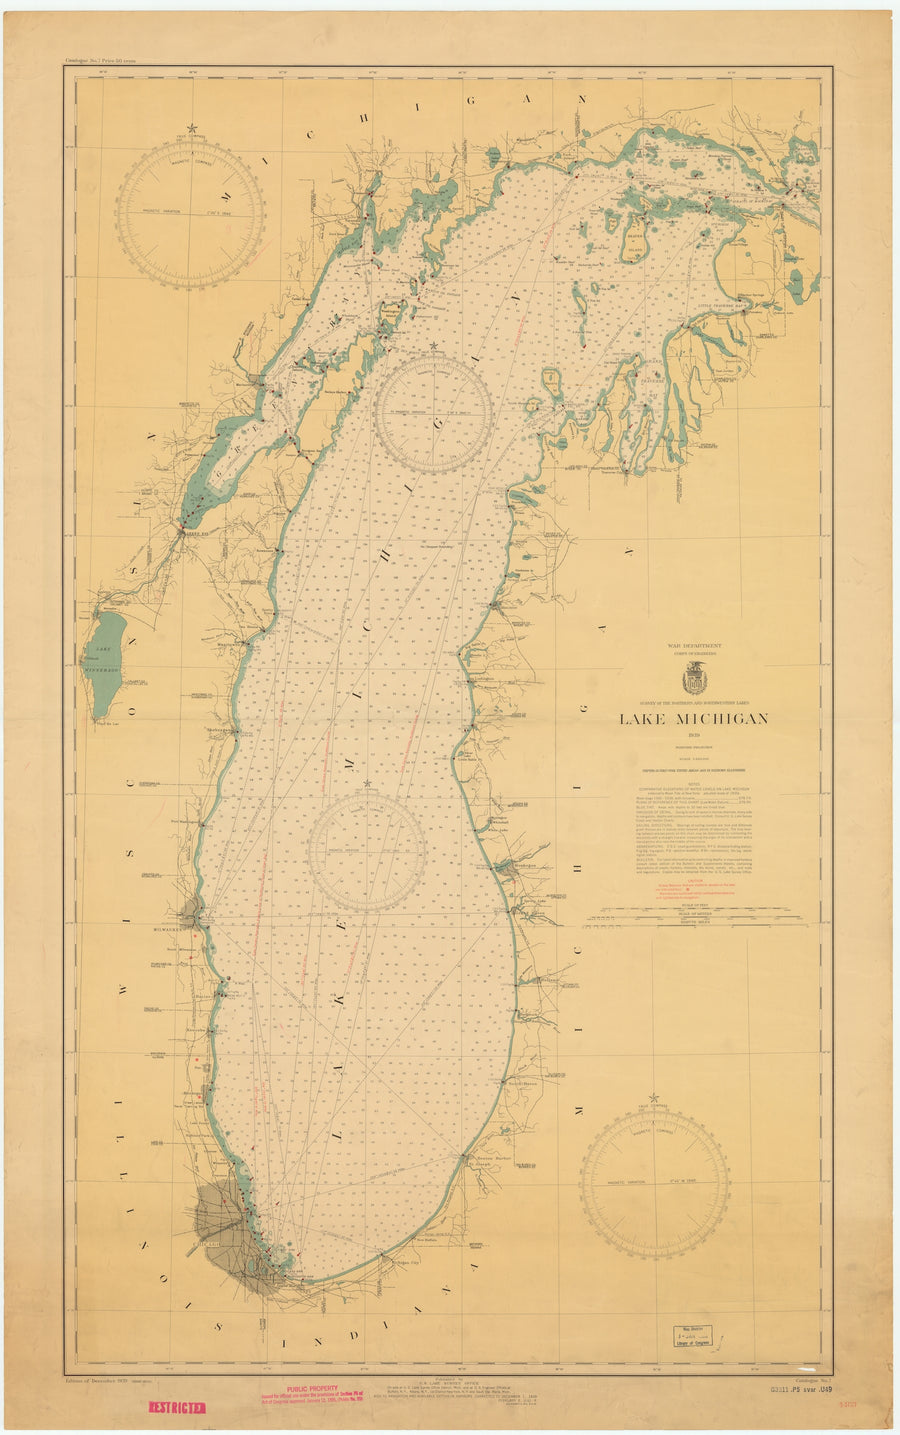 Lake Michigan Map - 1942